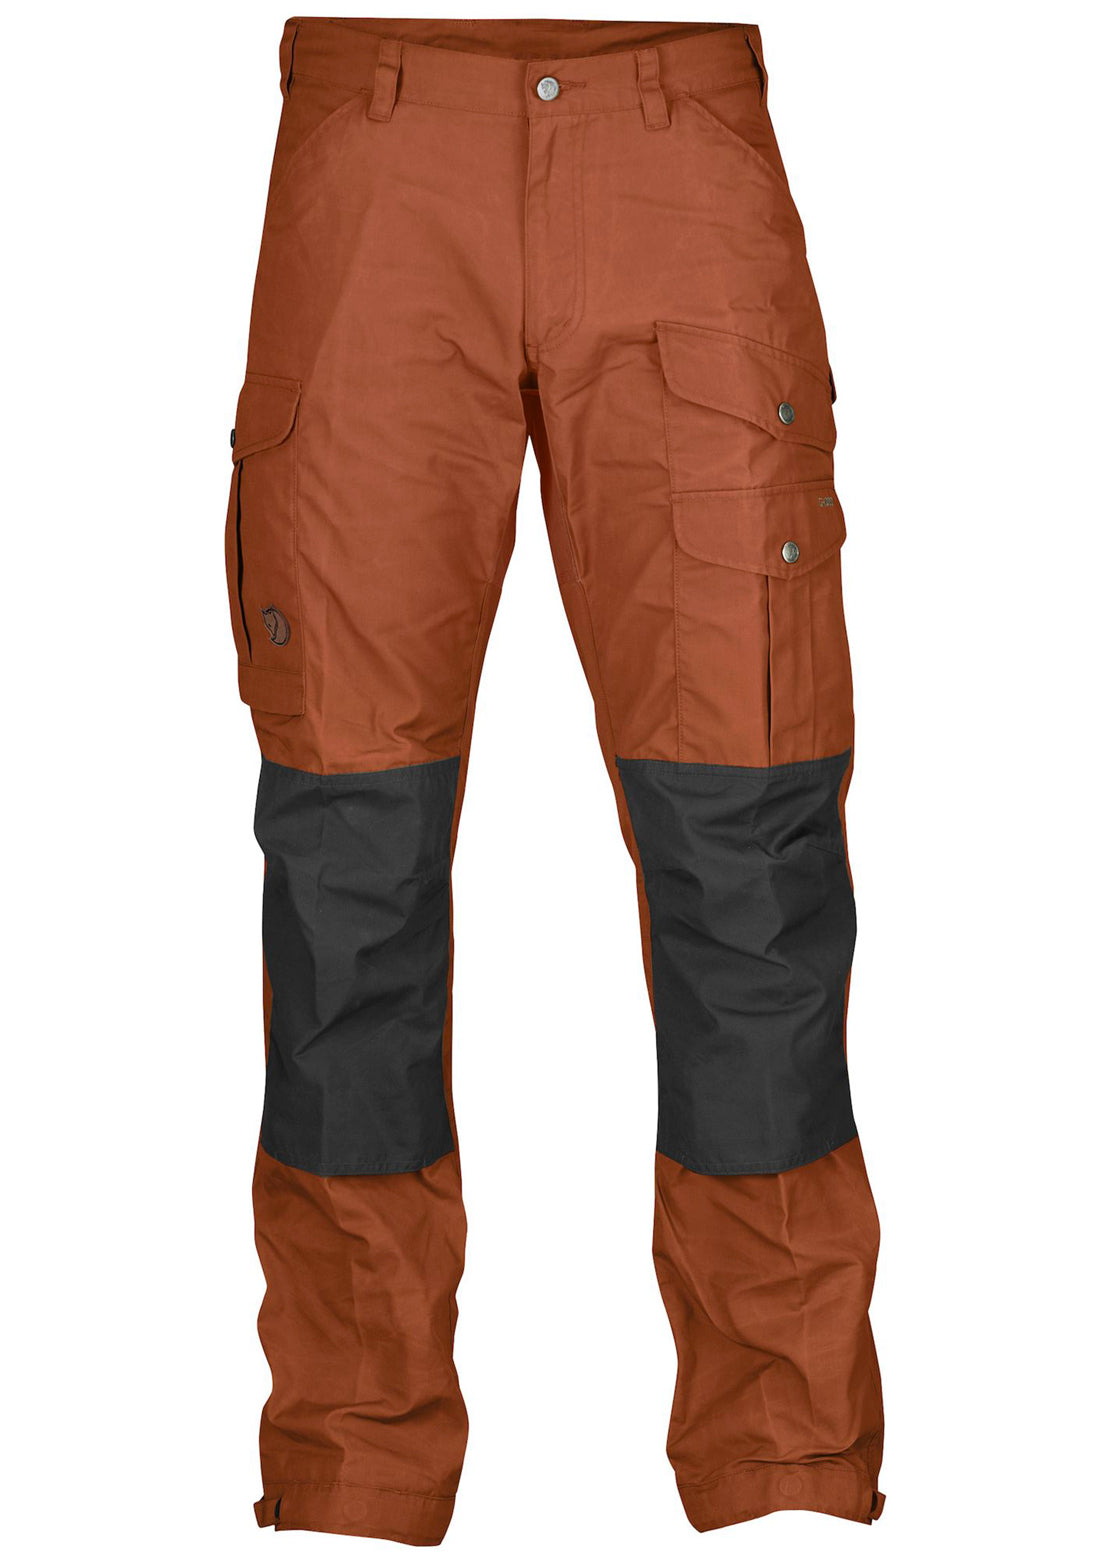 Fjallraven Men's Vidda Pro Trousers Reg Pants Autumn Leaf/Stone Grey